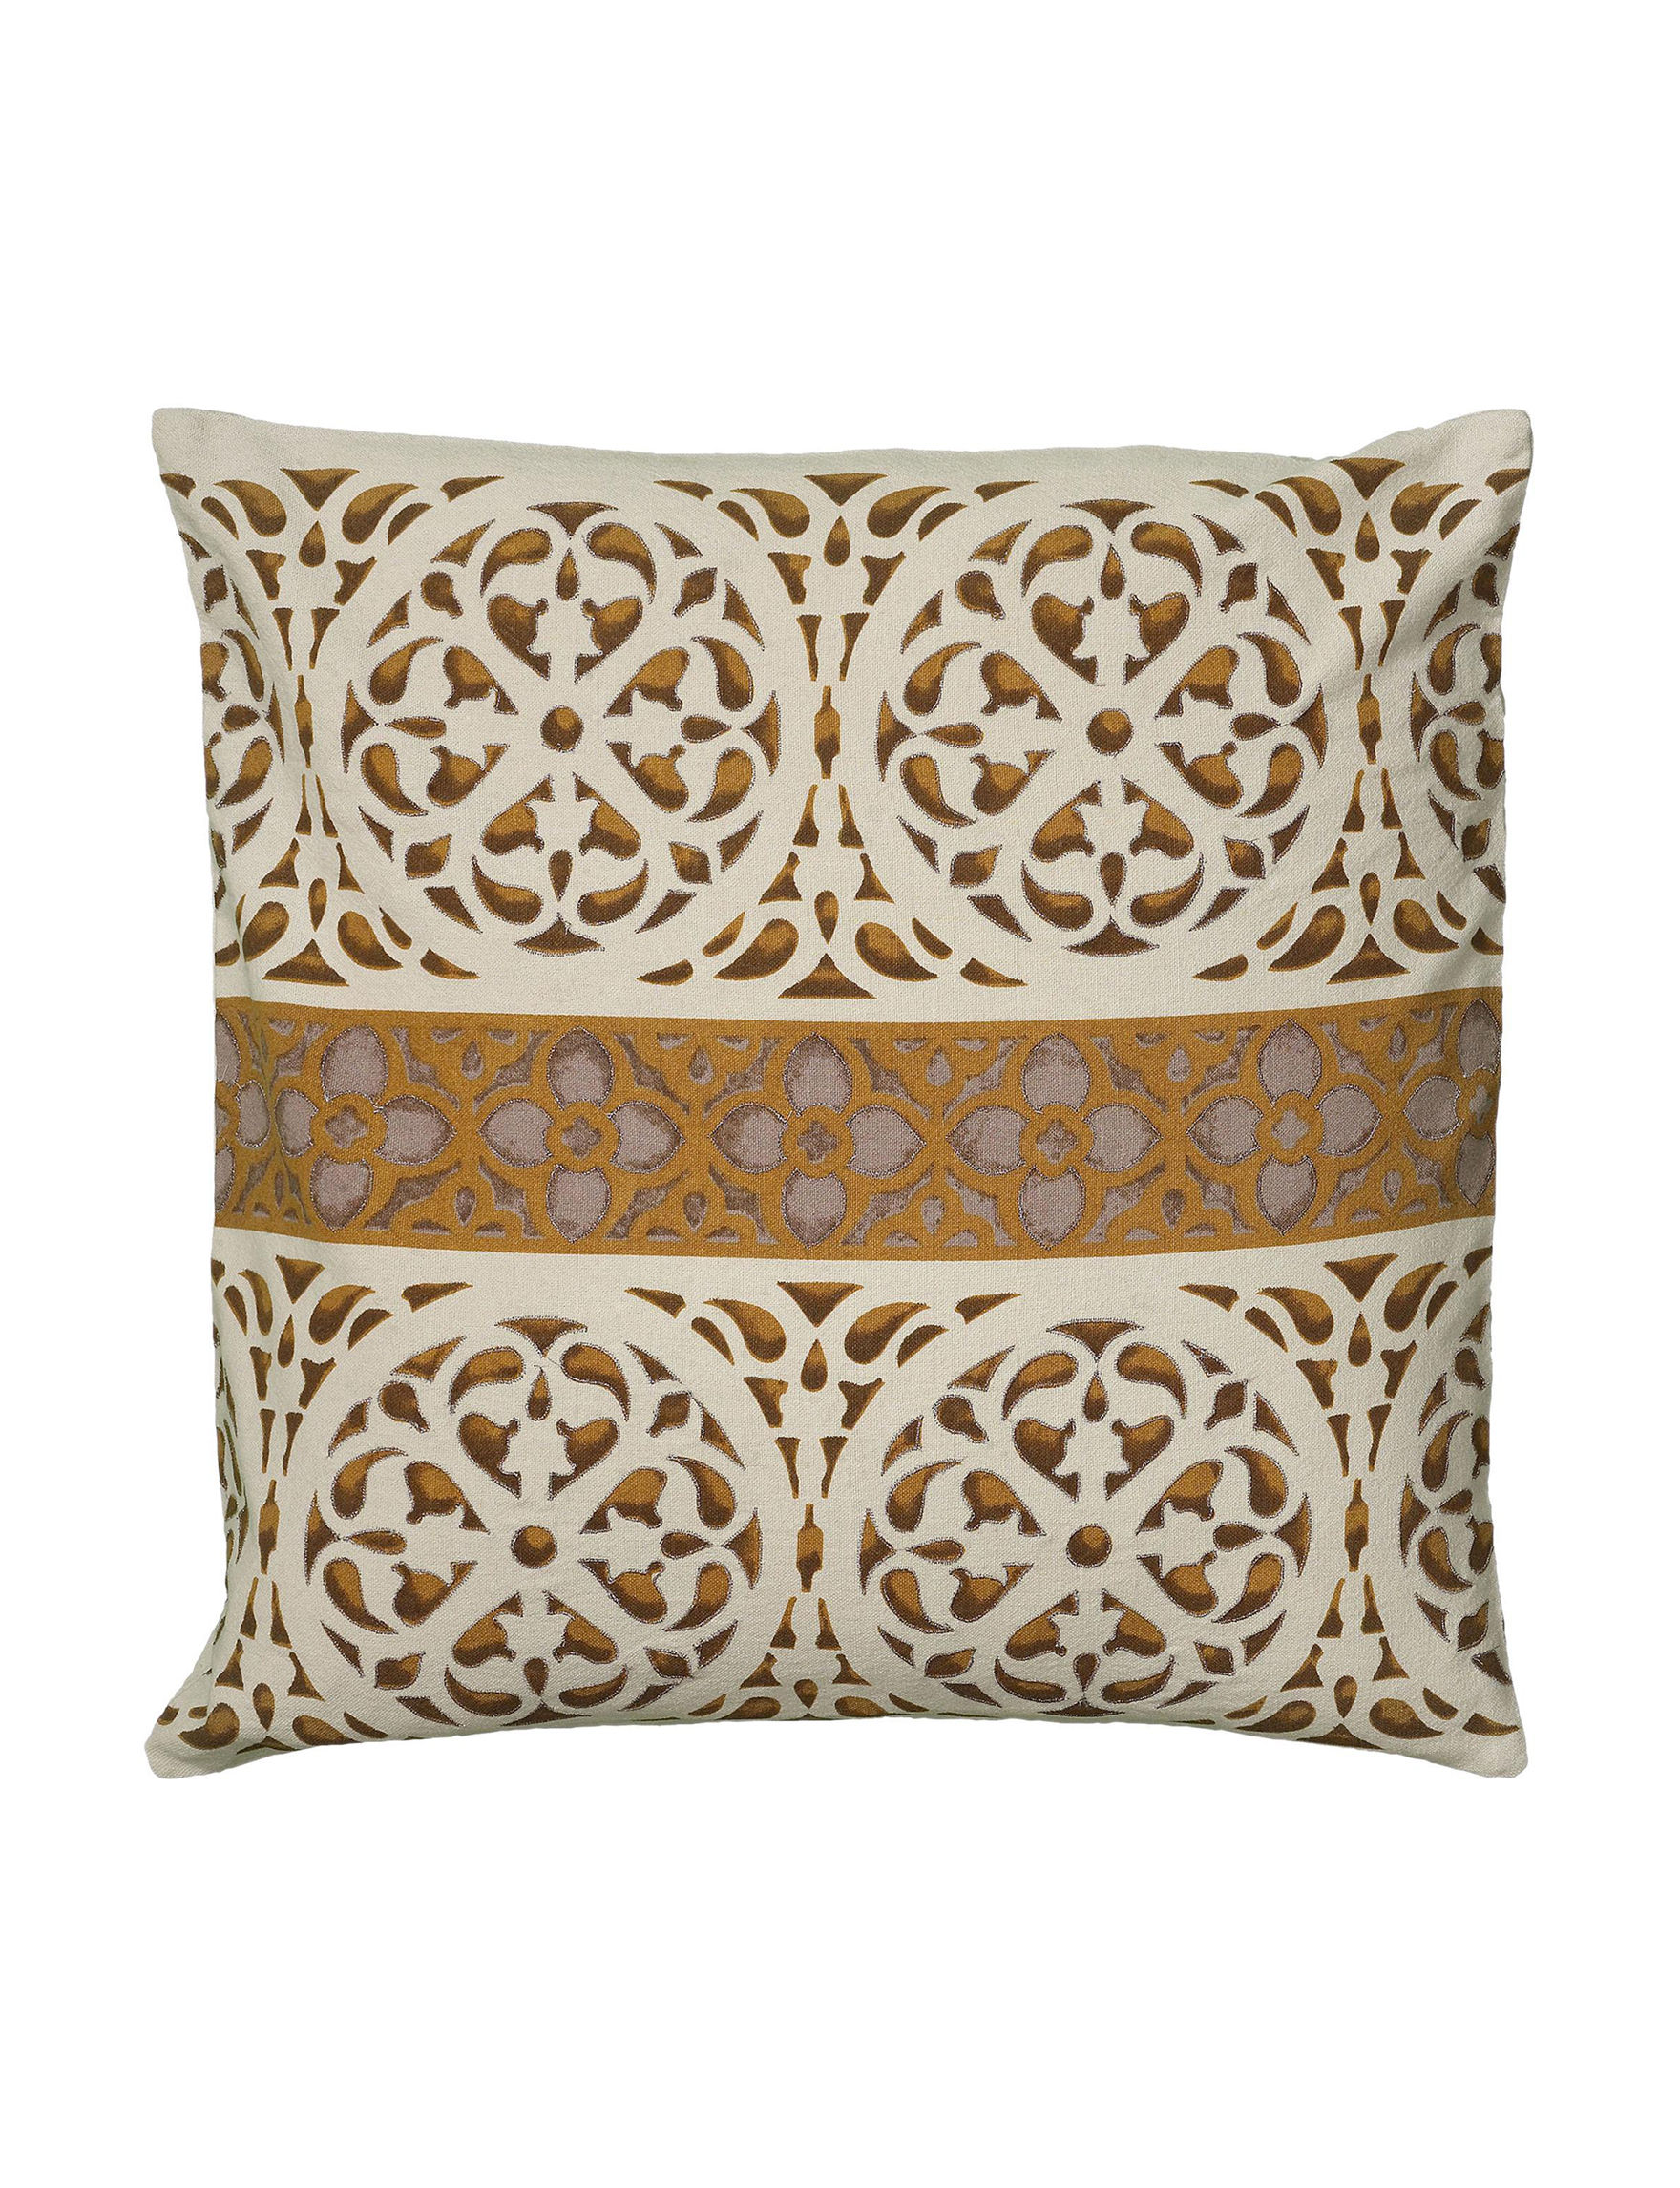 Rizzy Home Beige Decorative Pillows